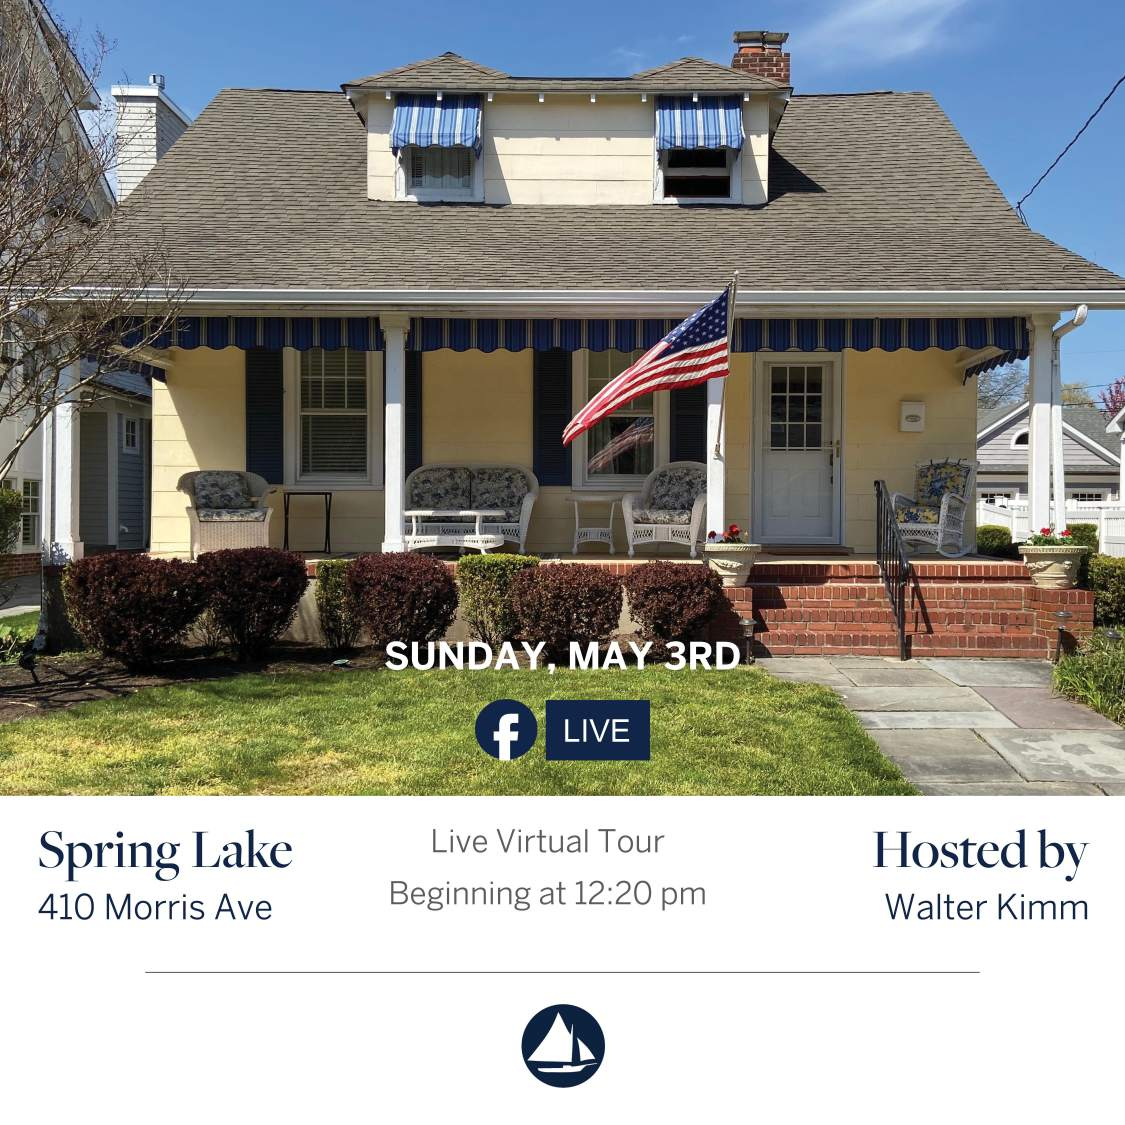 410 Morris Ave - May 3rd Virtual Open House on FB Live